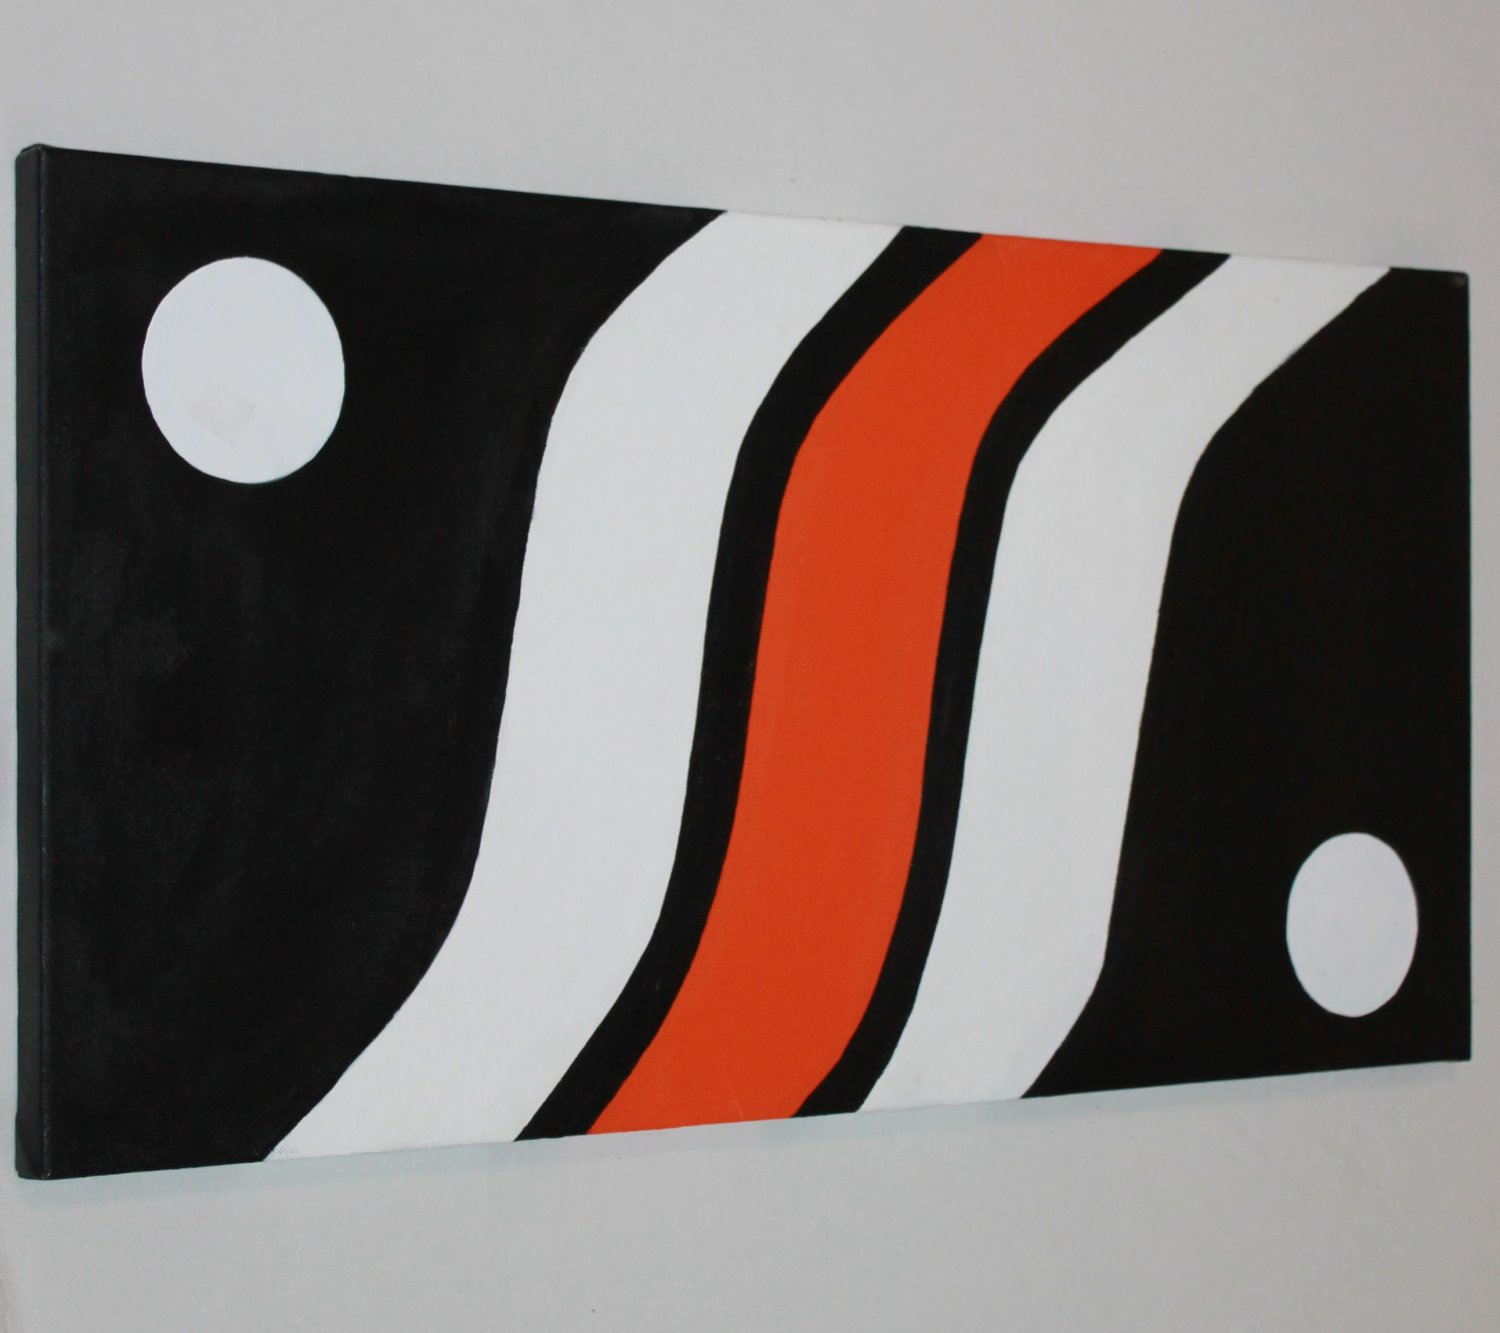 Accent Painting - Acrylic Art on Canvas - Home or Office decor - black white orange